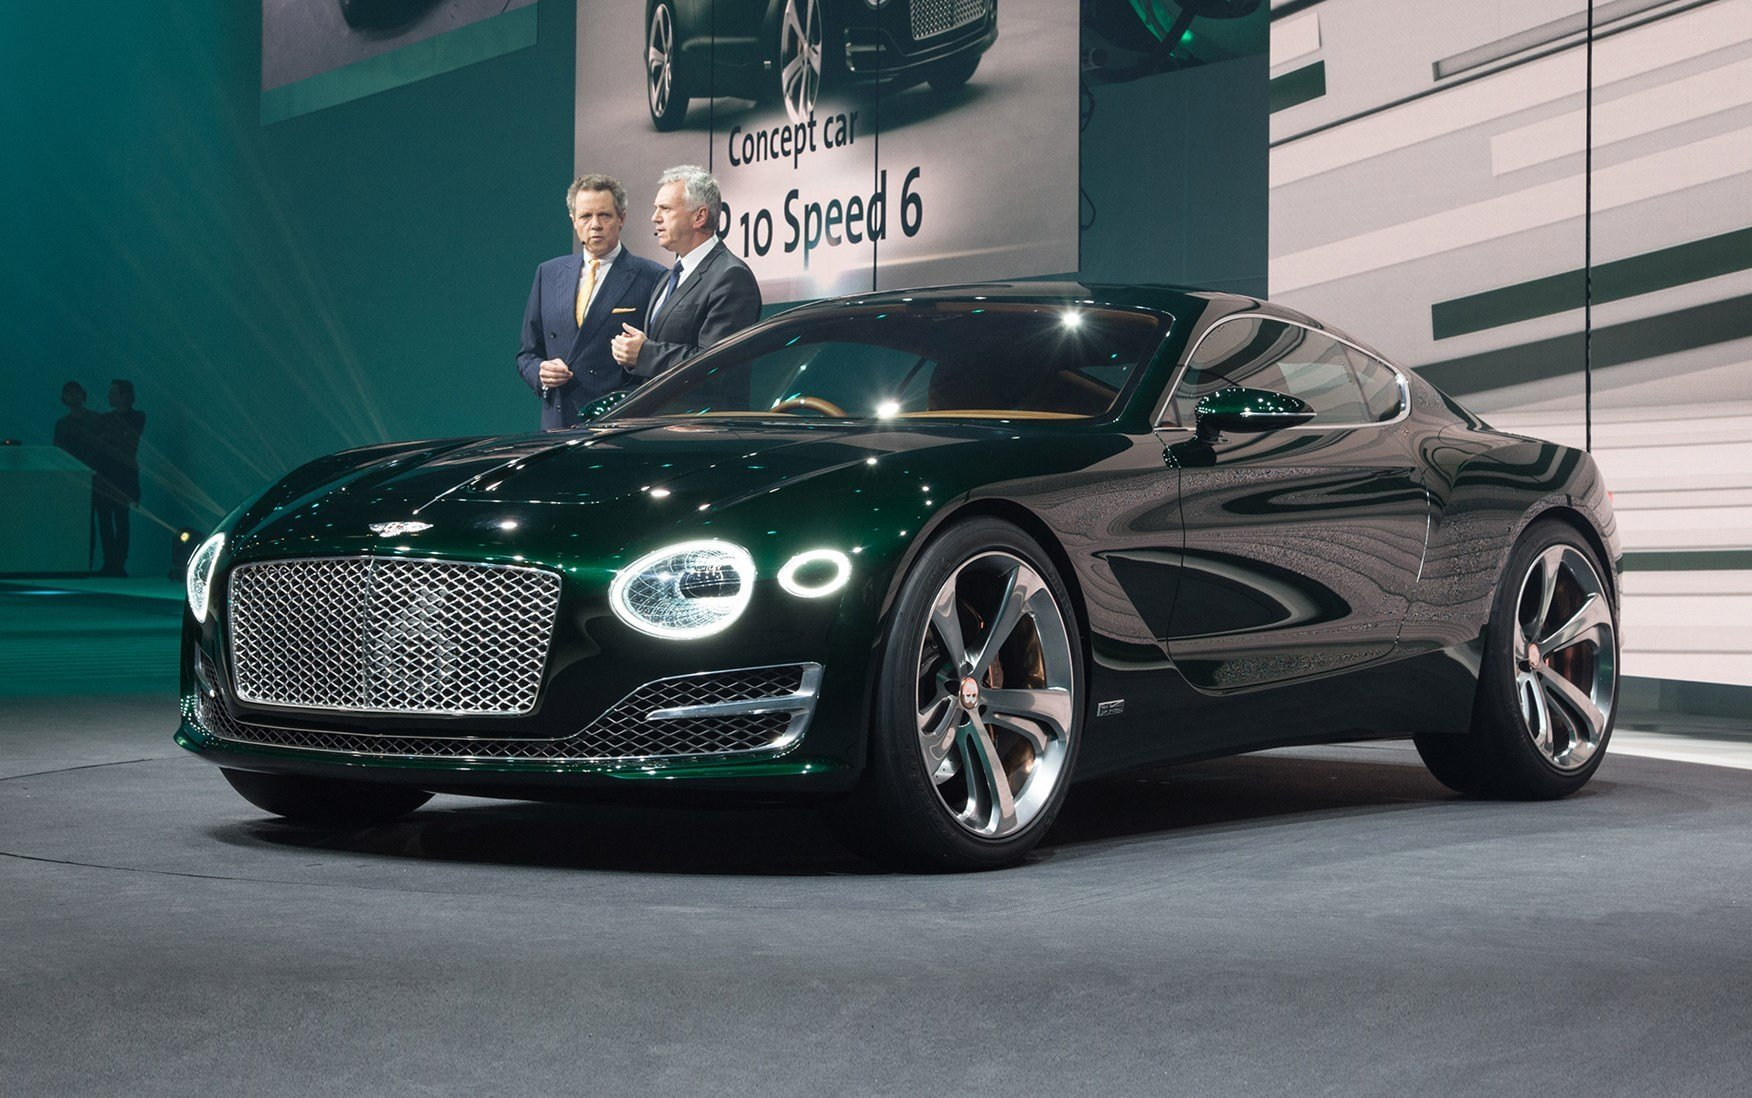 Latest Now That's More Like It Bentley Exp 10 Speed 6 Points To Free Download